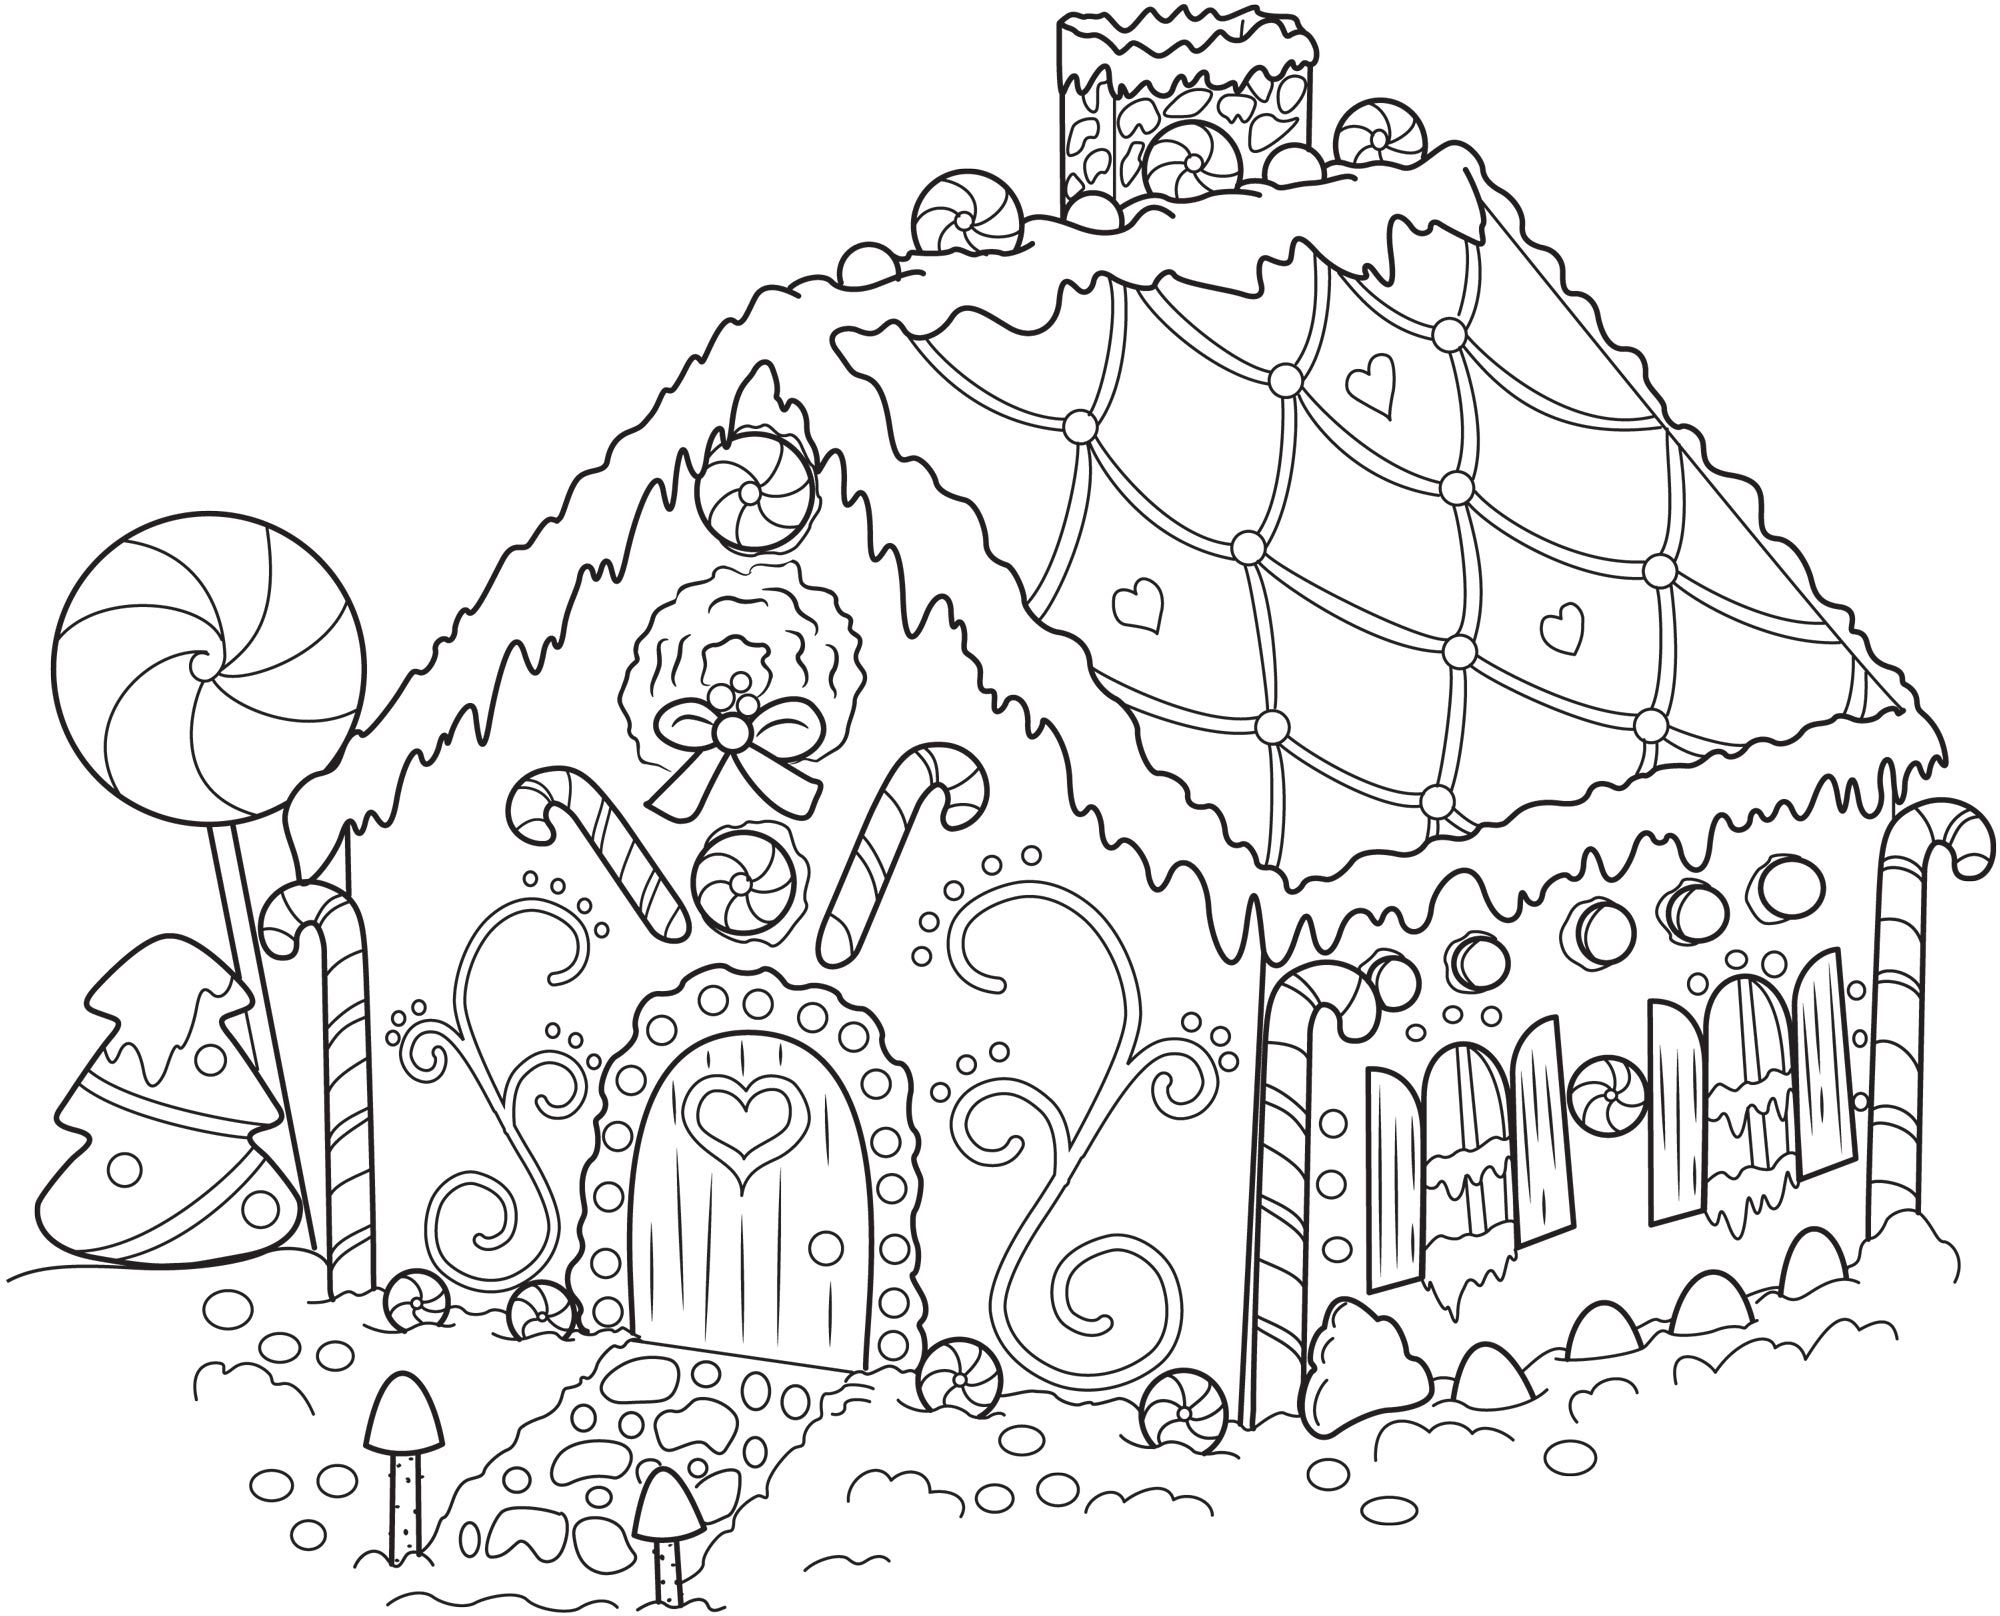 Gingerbread House Coloring Pages Pencil 369154 Jpg 2 000 1 616